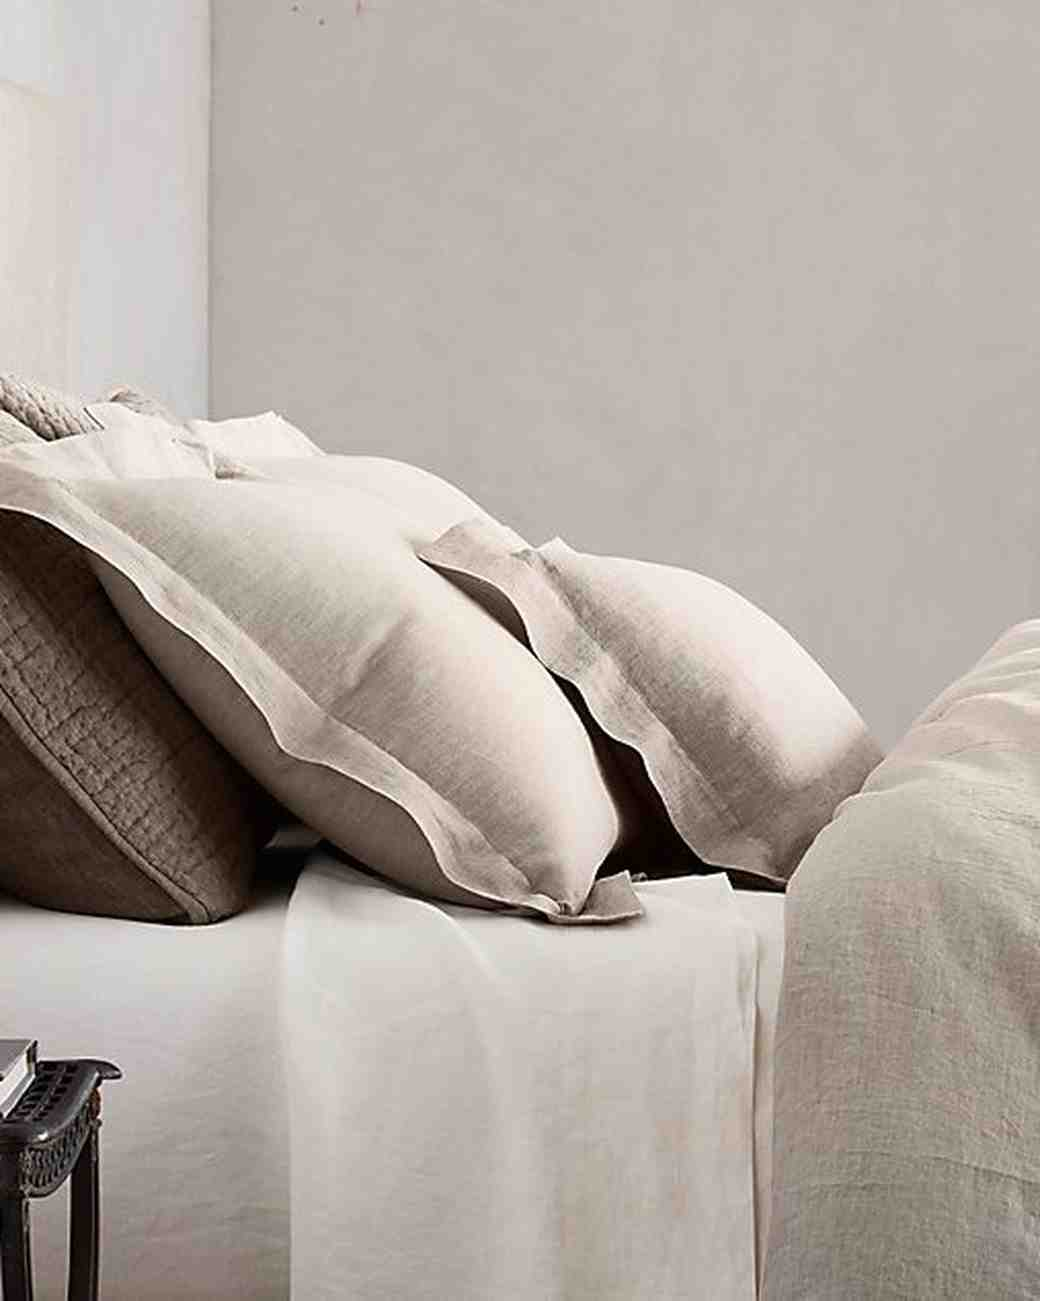 Linen Wedding Anniversary Gifts, Restoration Hardware Bedding